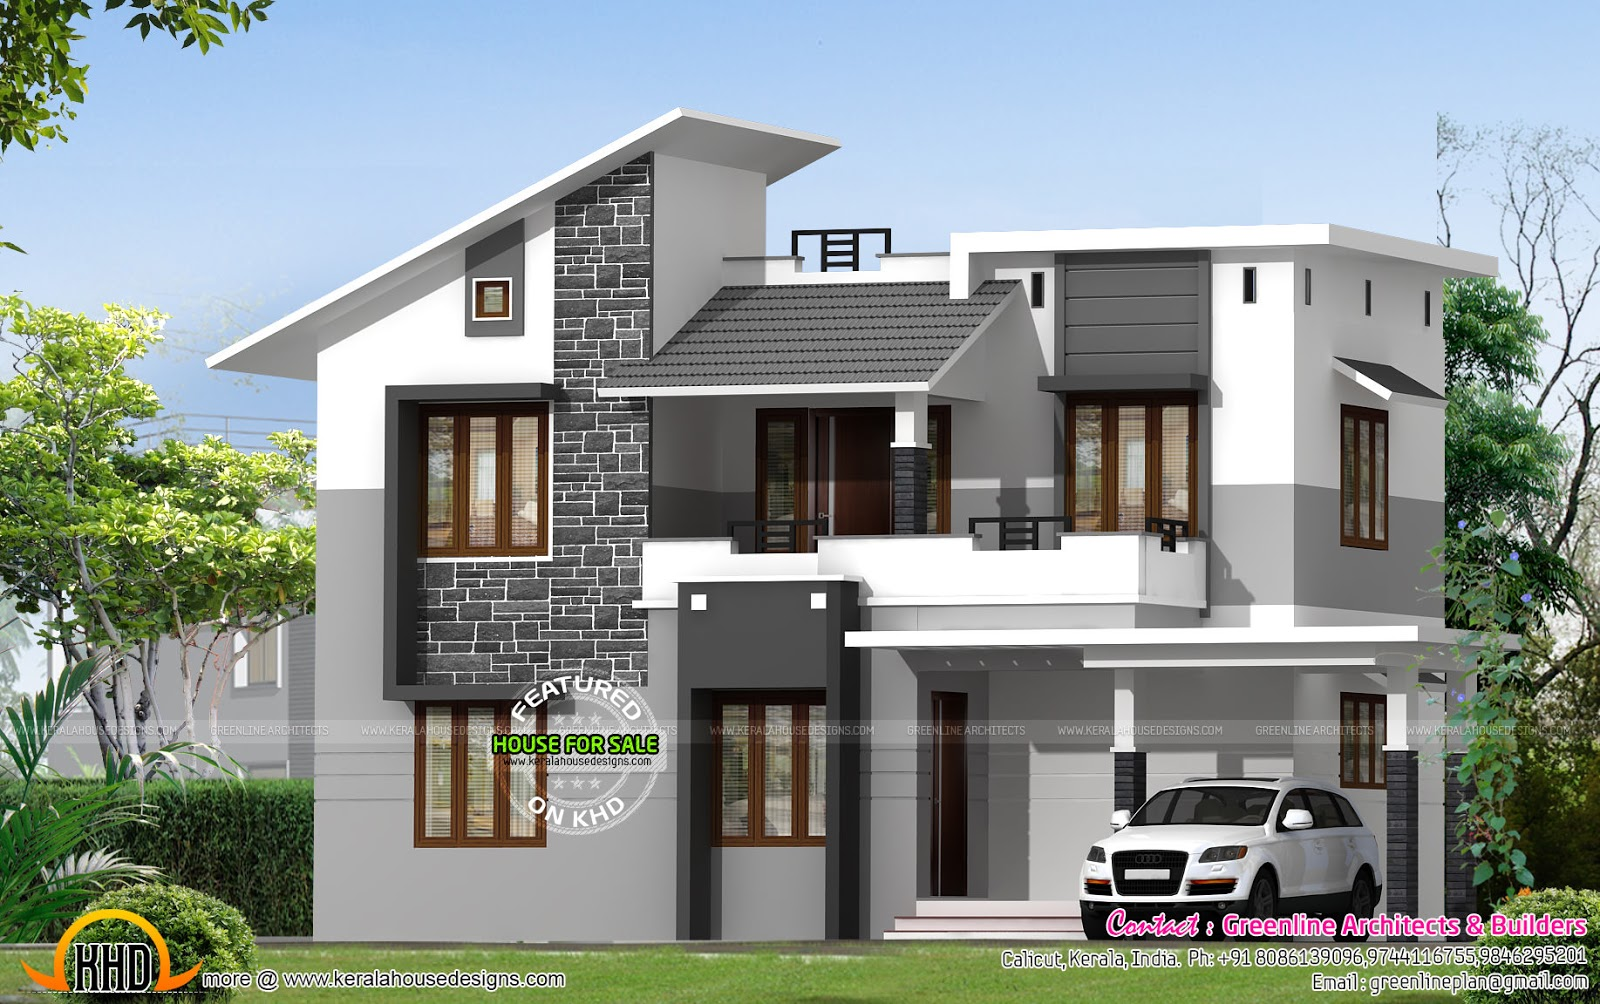 Villa for sale at calicut kerala kerala home design and New home designs in india